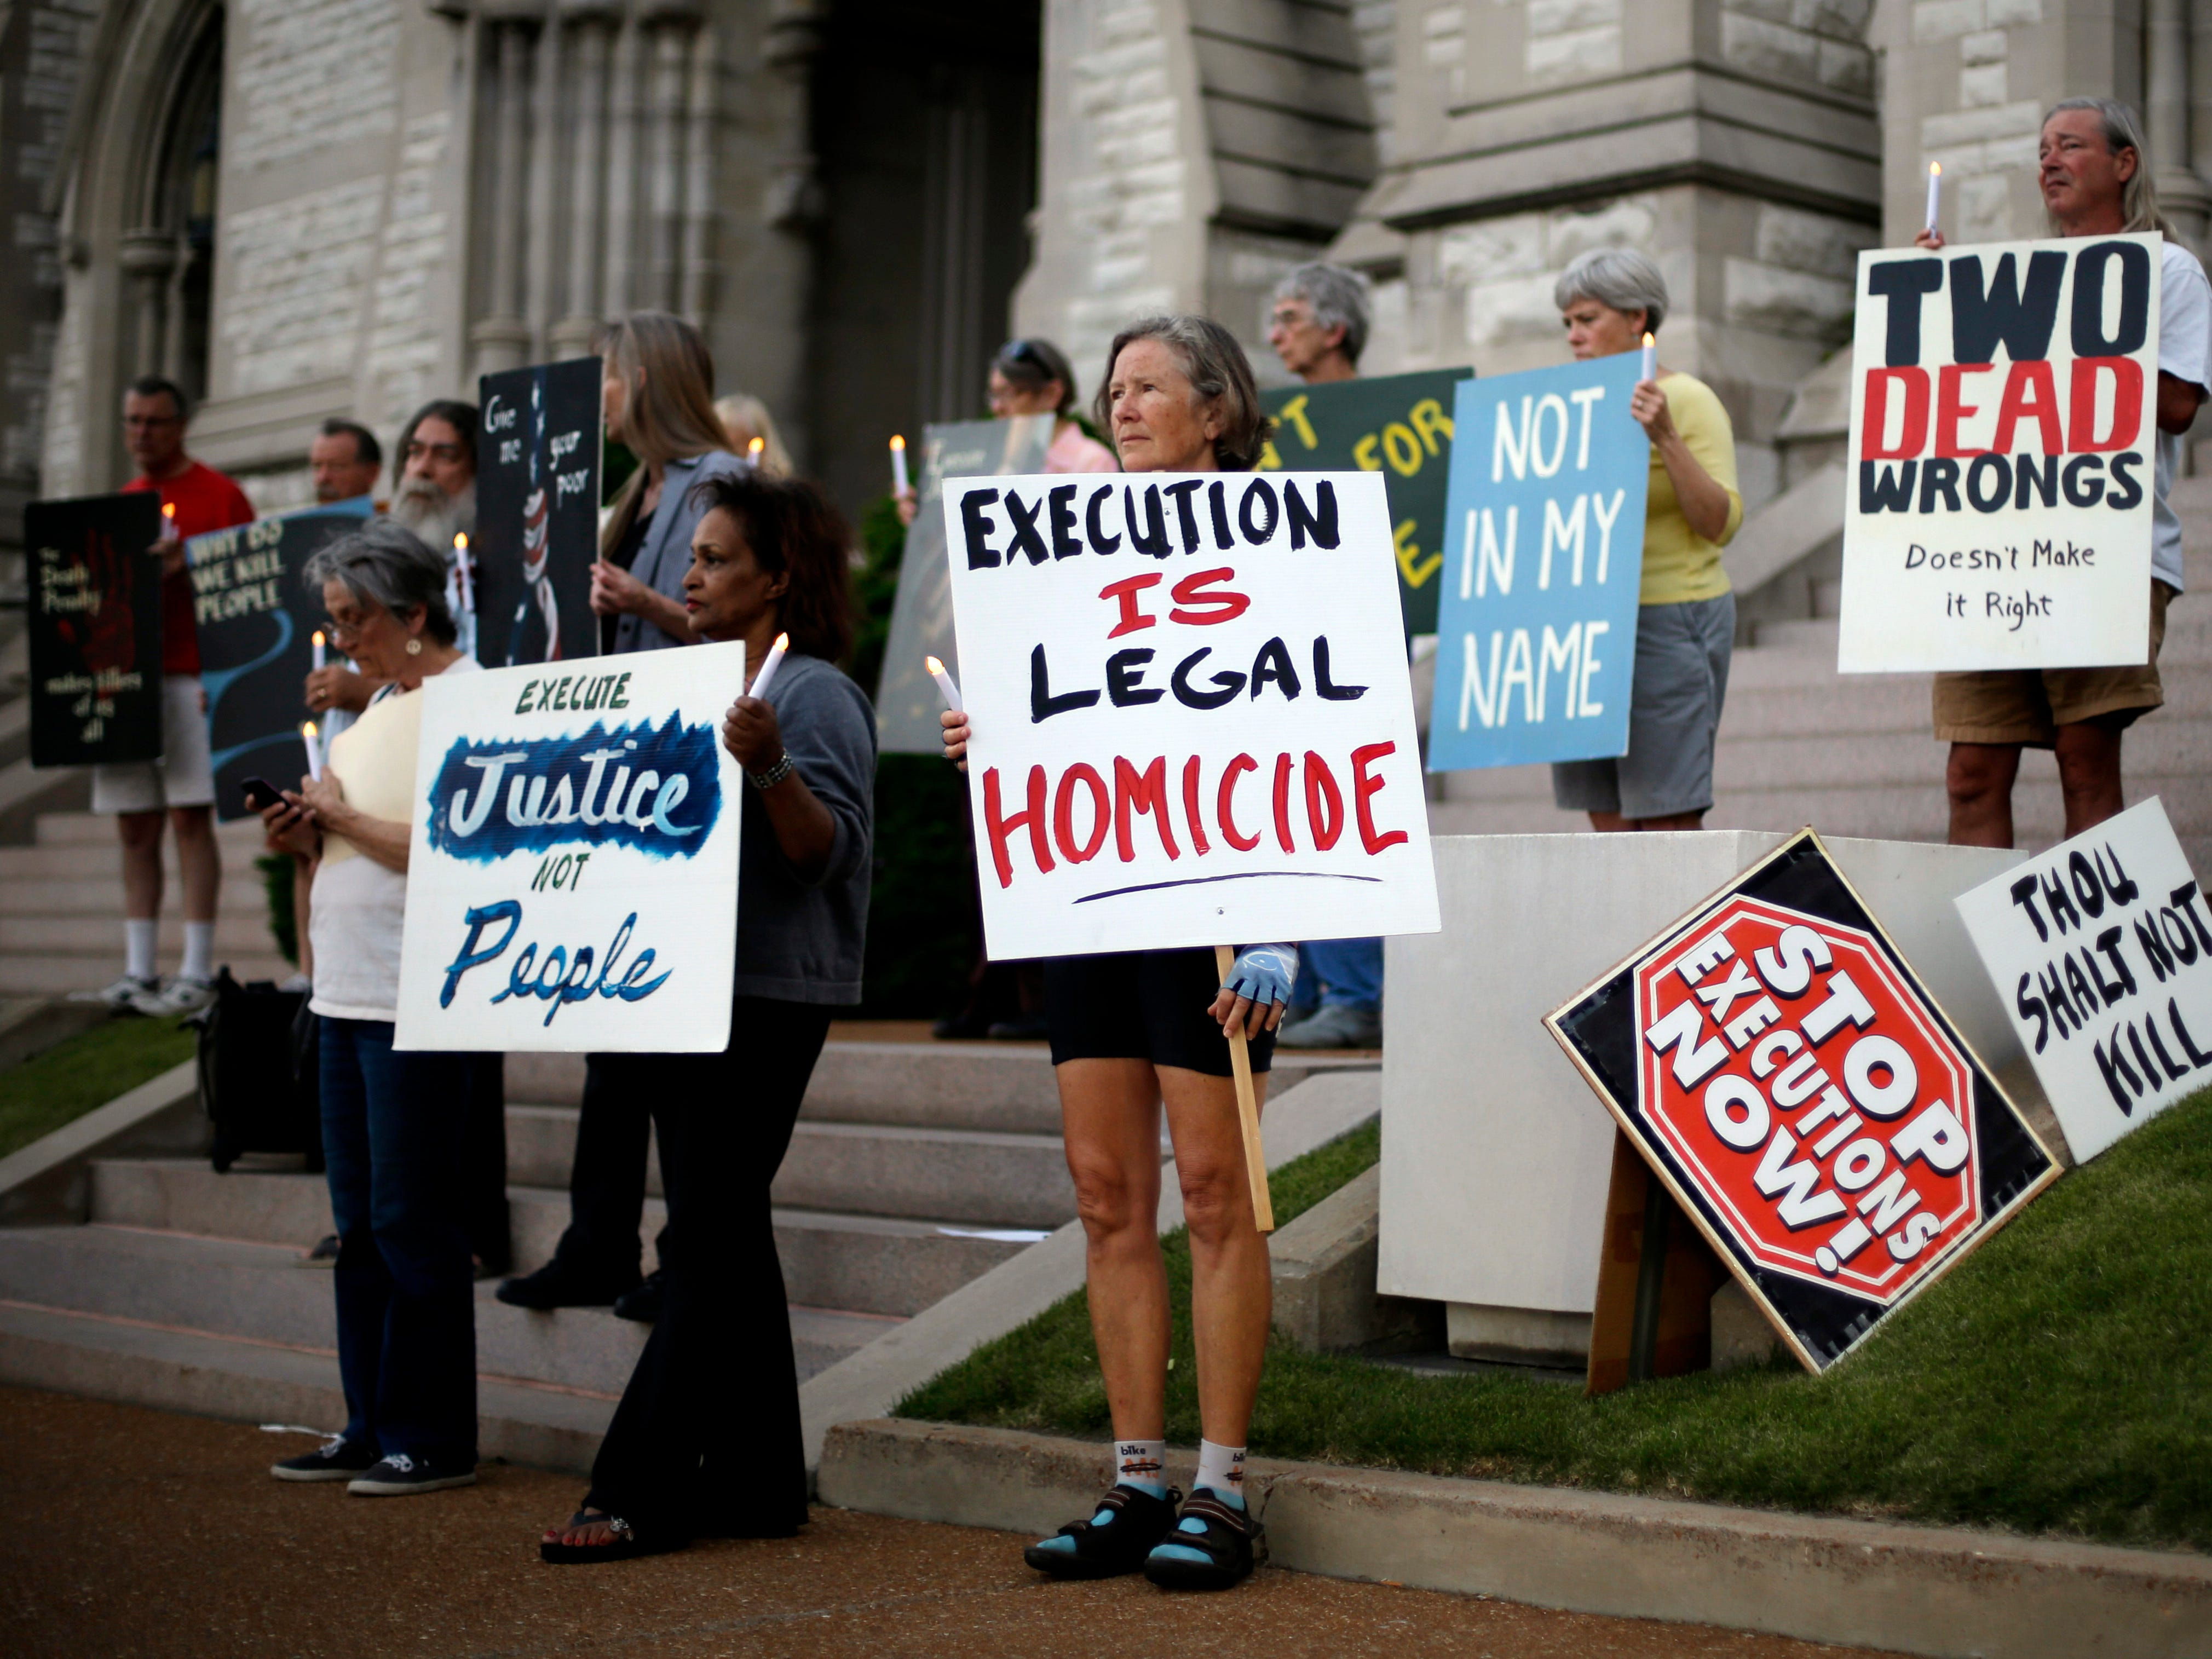 Former executioners: SCOTUS must stop lethal injection in Missouri case